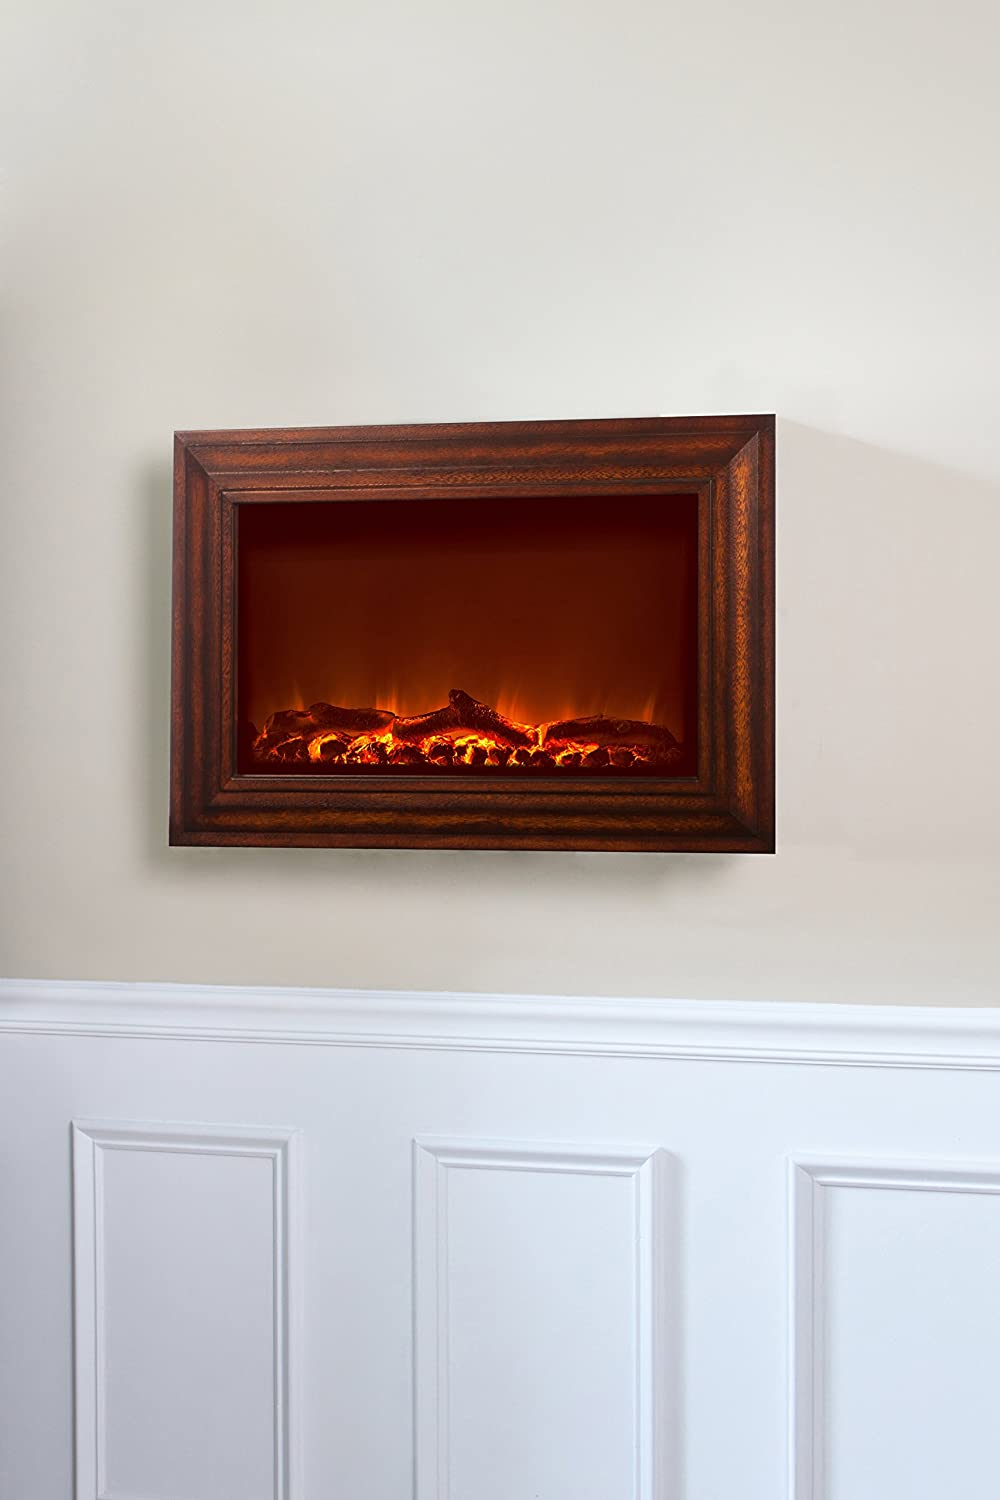 Amazon.com : Fire Sense Wood Wall Mounted Electric Fireplace ...